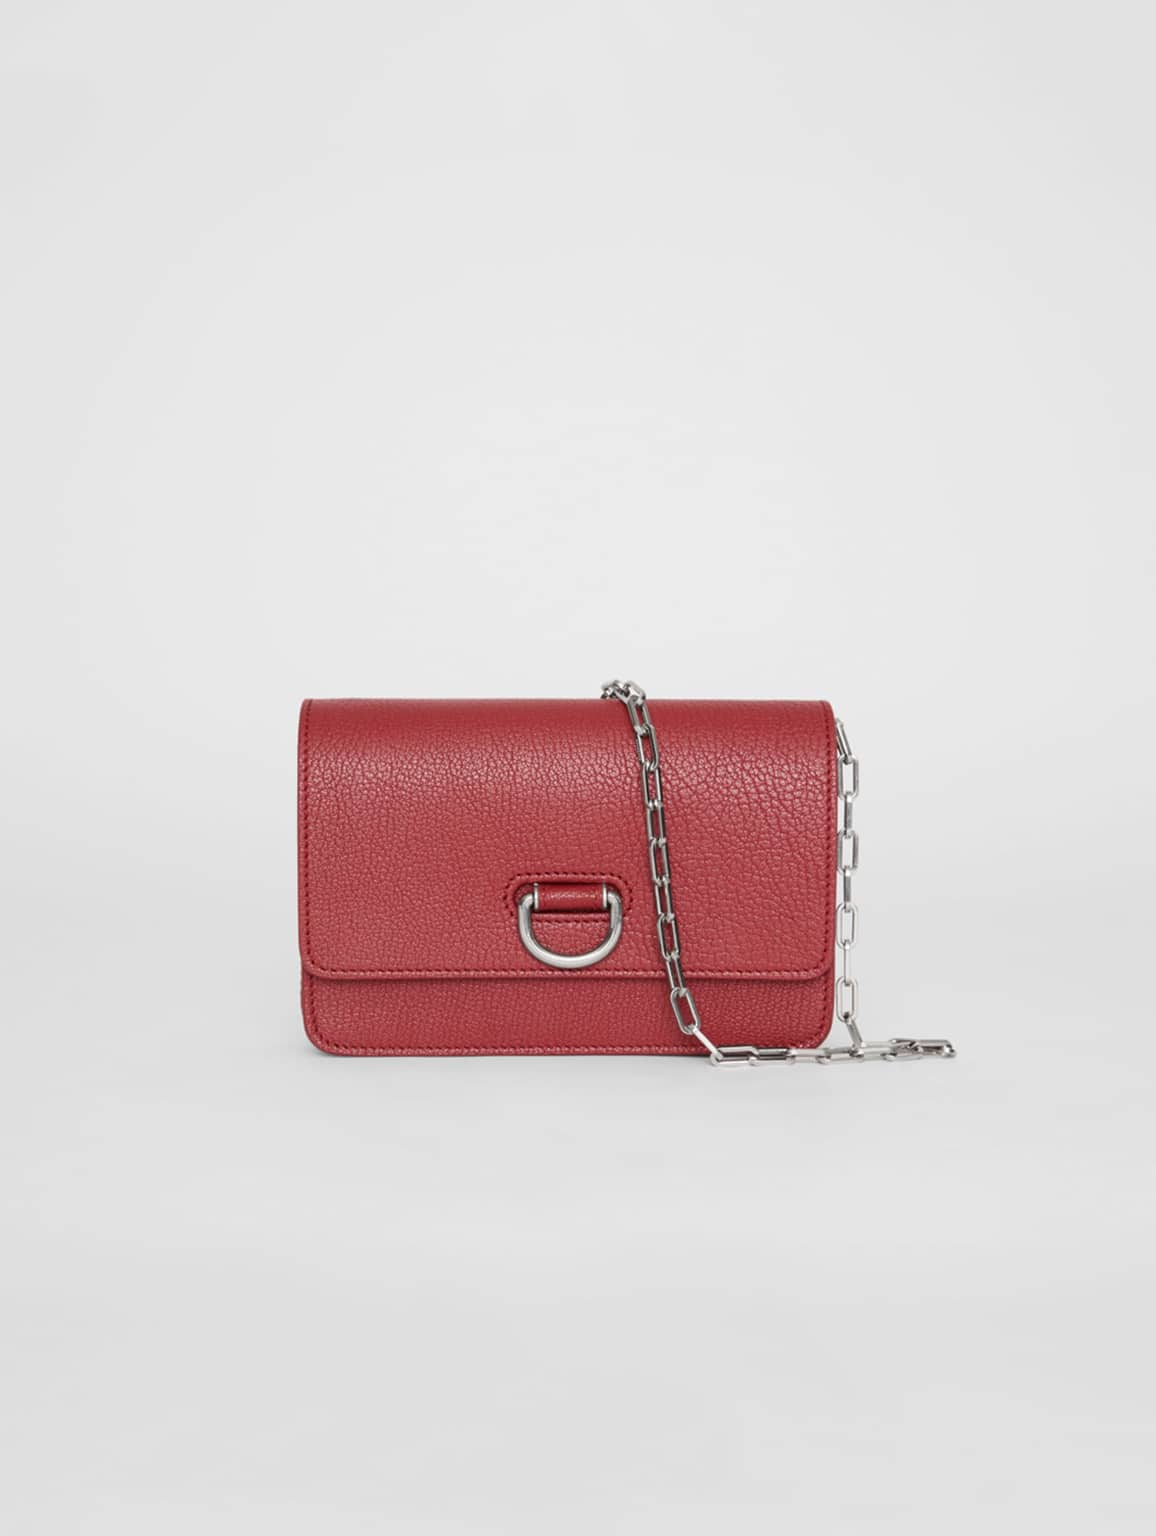 The Burberry Mini Leather D-ring Bag (S$1,580).